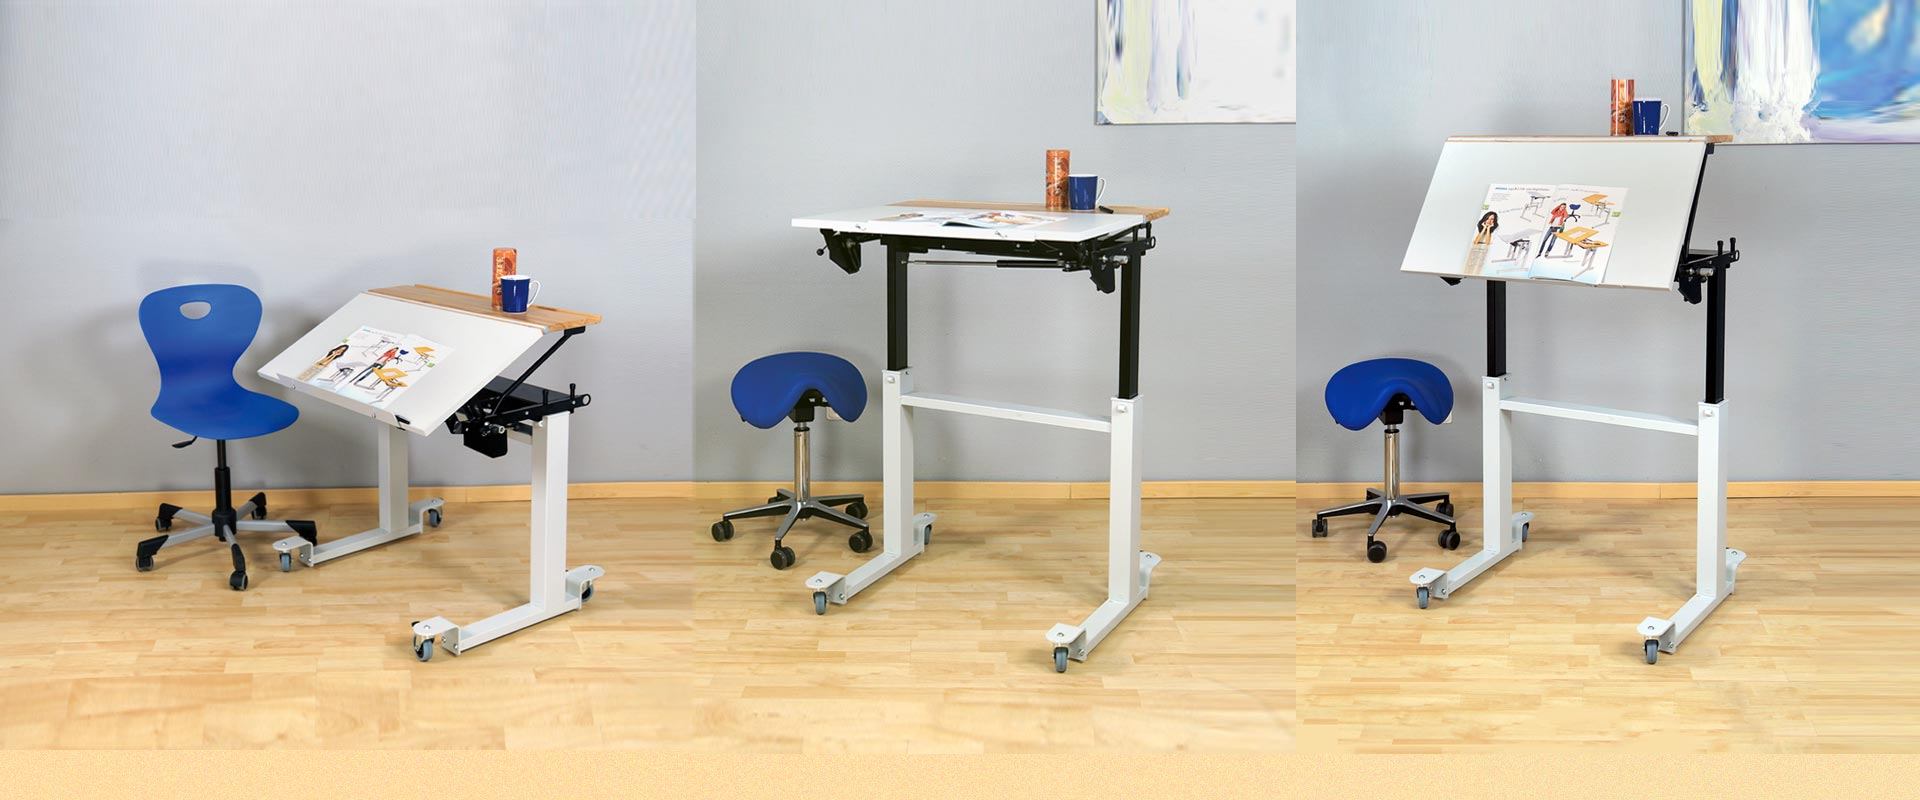 height inclination adjustable desk